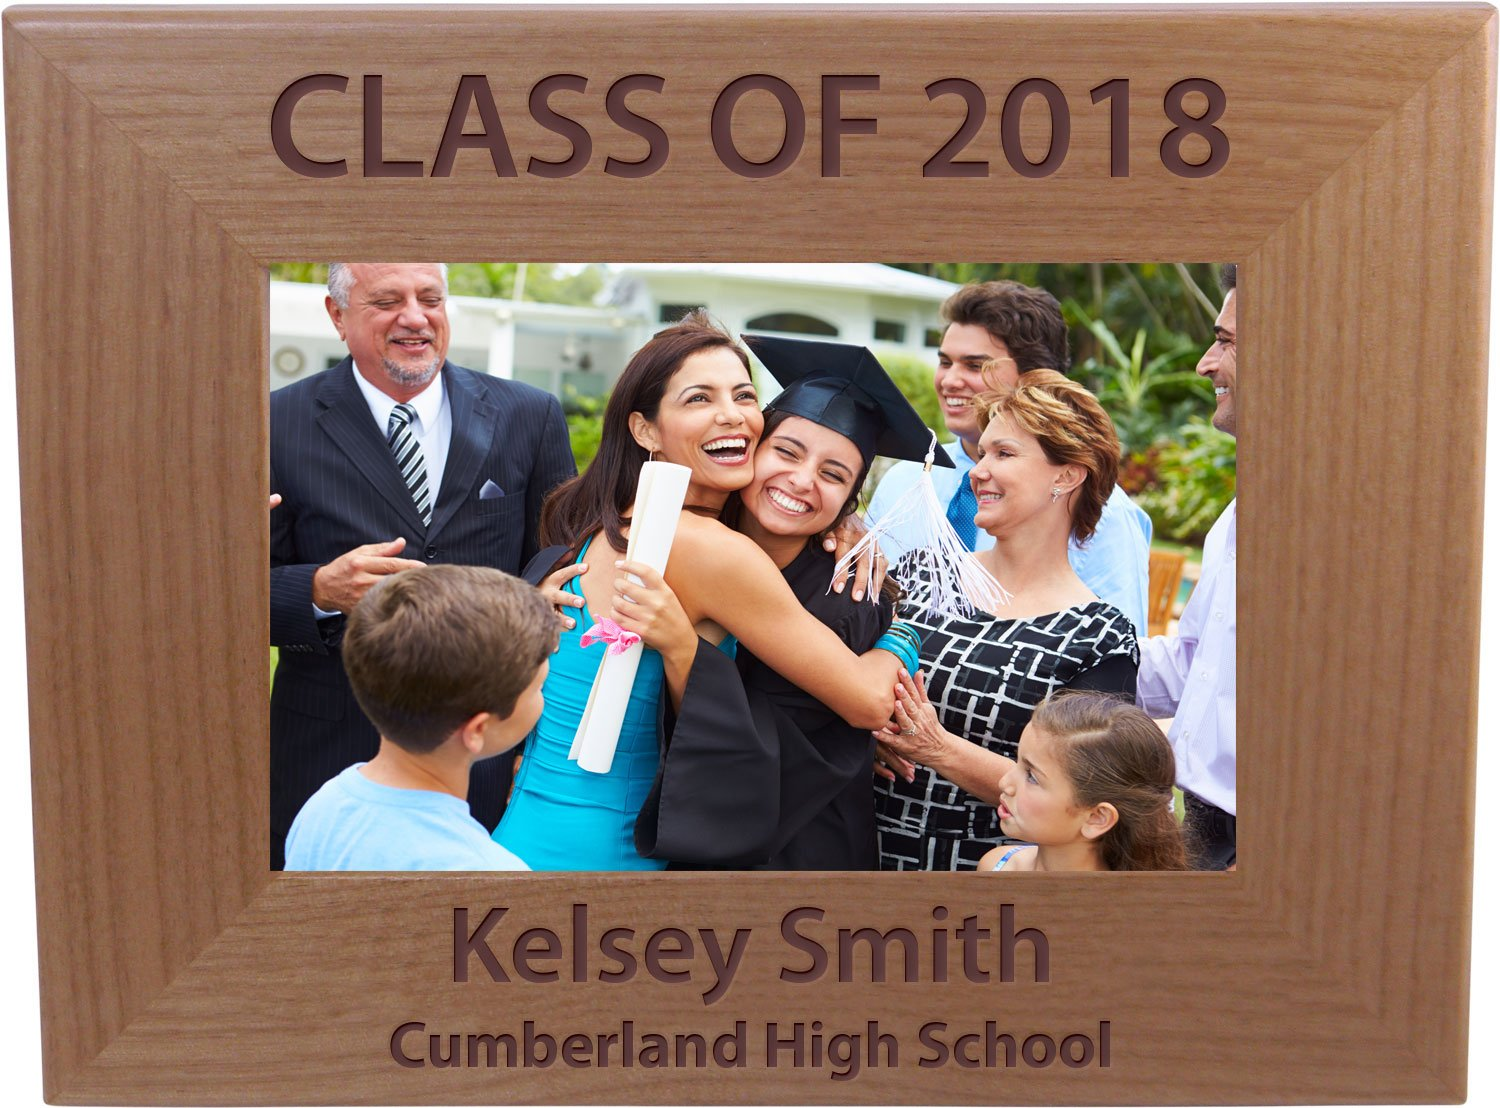 Congratulations Graduate Class Of 2018 - Custom Wood Picture Frame Holds 4x6 Inch Photo - Add the year custom graduation